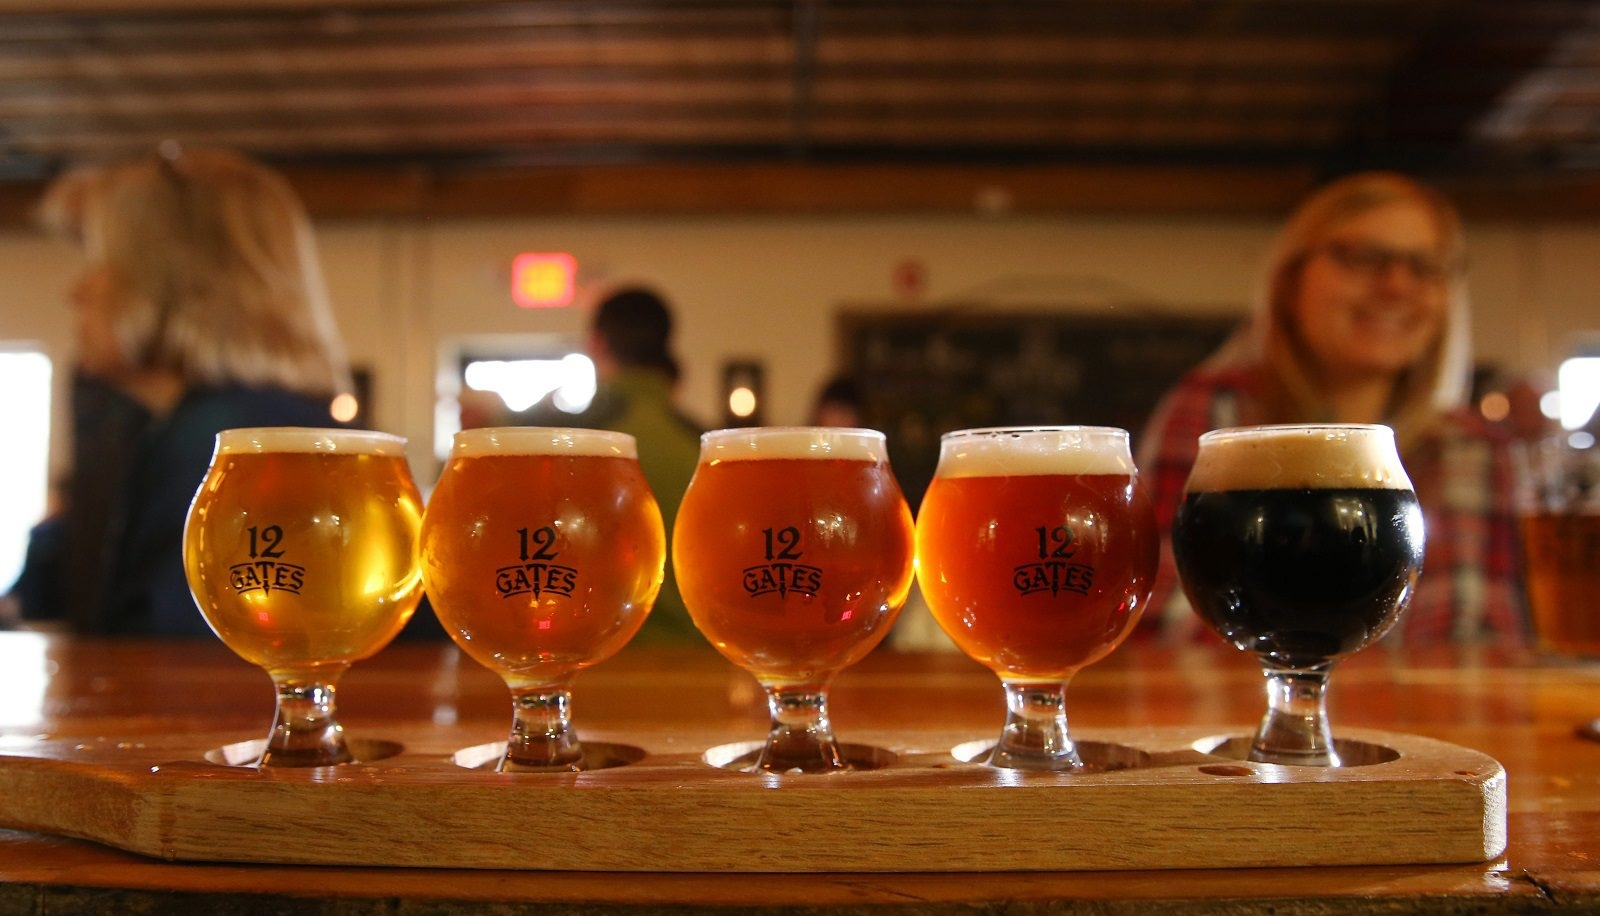 A flight of beer from 12 Gates Brewing Co. in East Amherst.  (Sharon Cantillon/Buffalo News file photo)